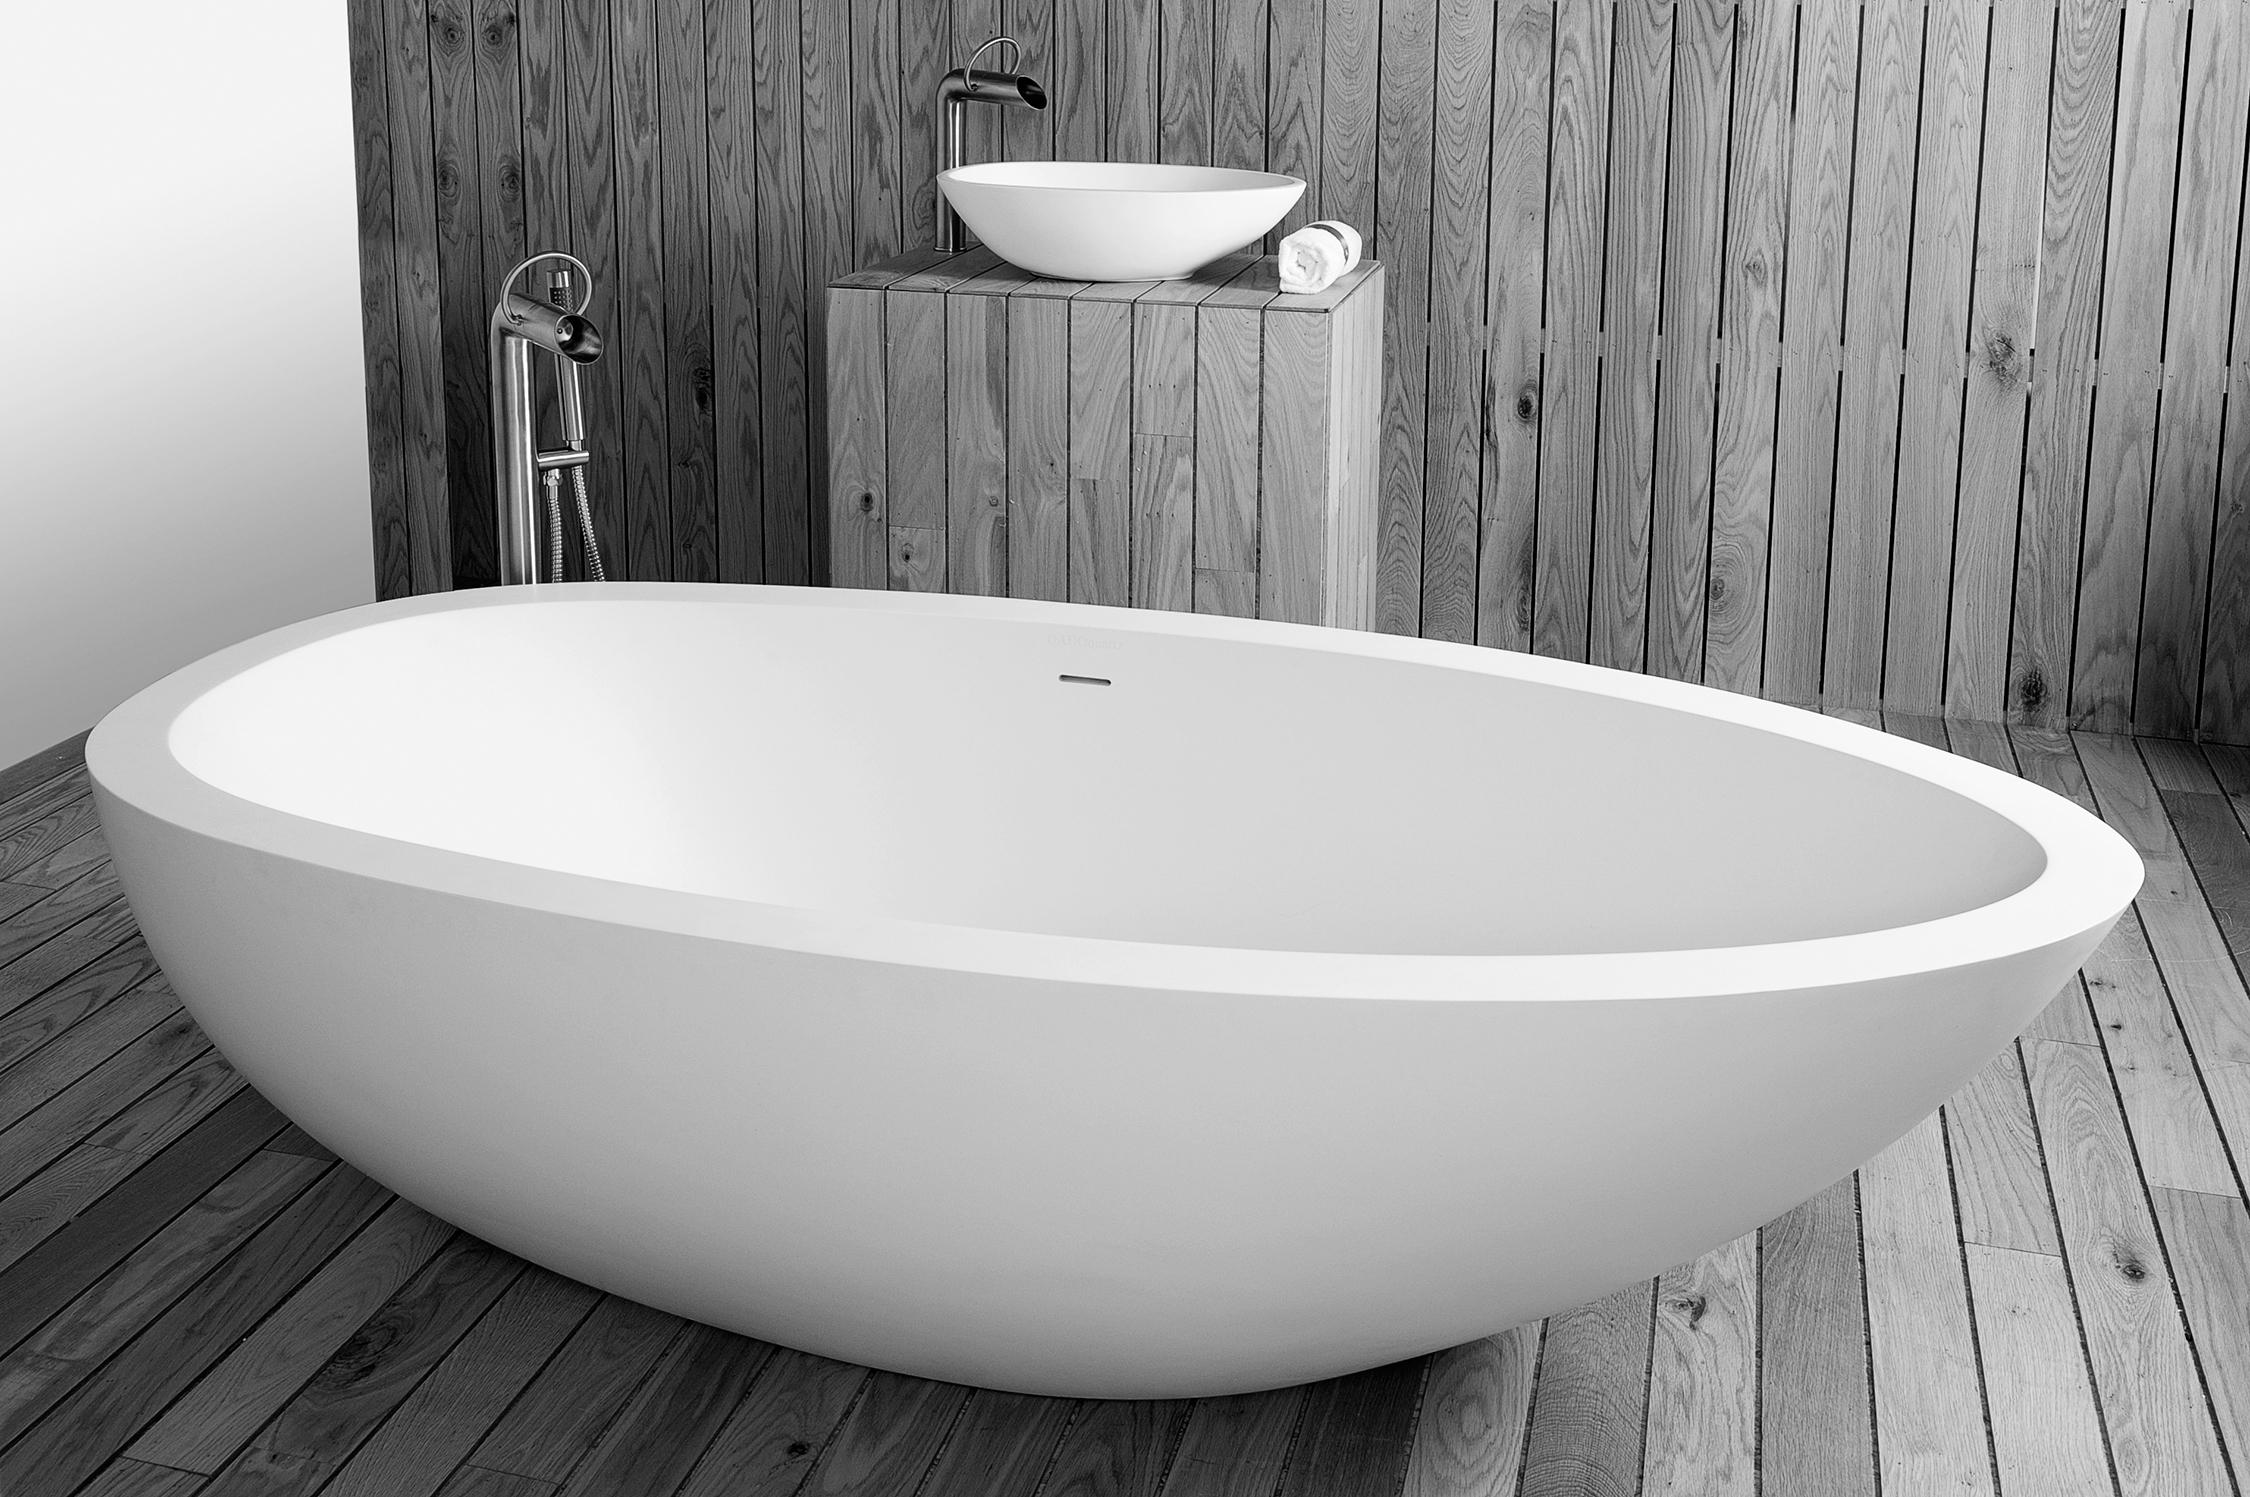 ELAINE DADOQUARTZ BATHTUB - Bathtubs from DADObaths | Architonic